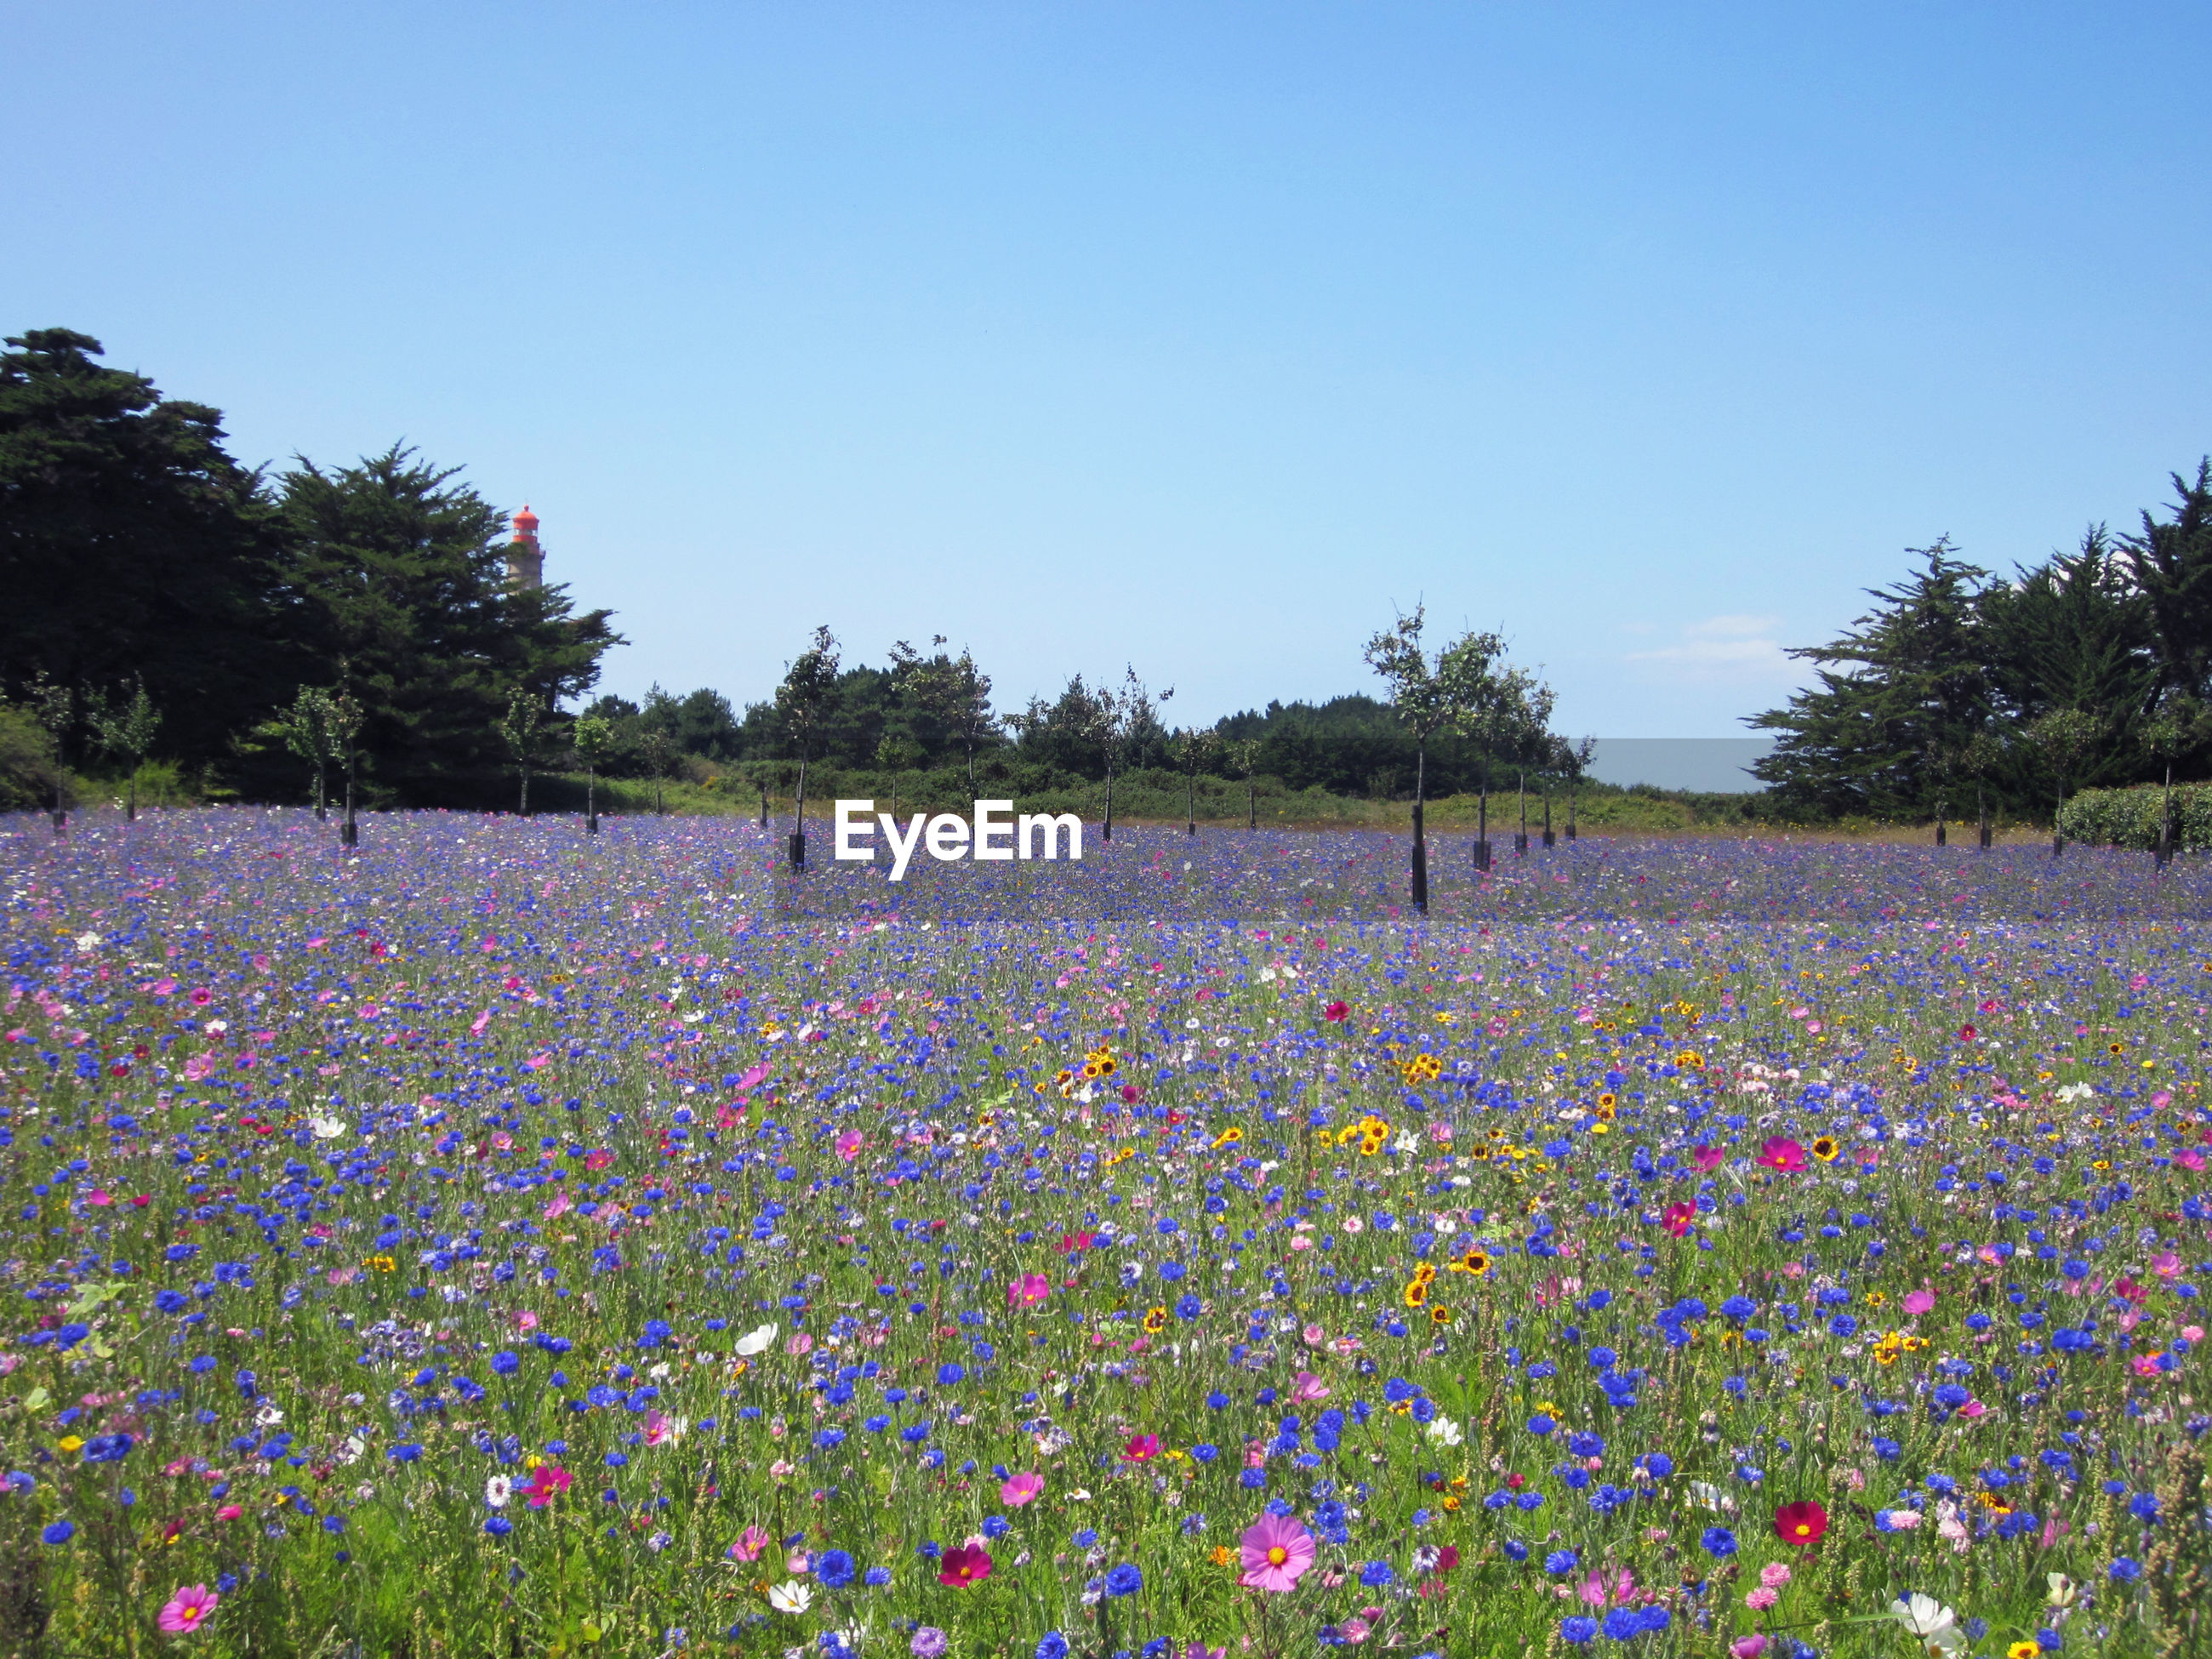 VIEW OF FLOWERS GROWING ON FIELD AGAINST CLEAR SKY